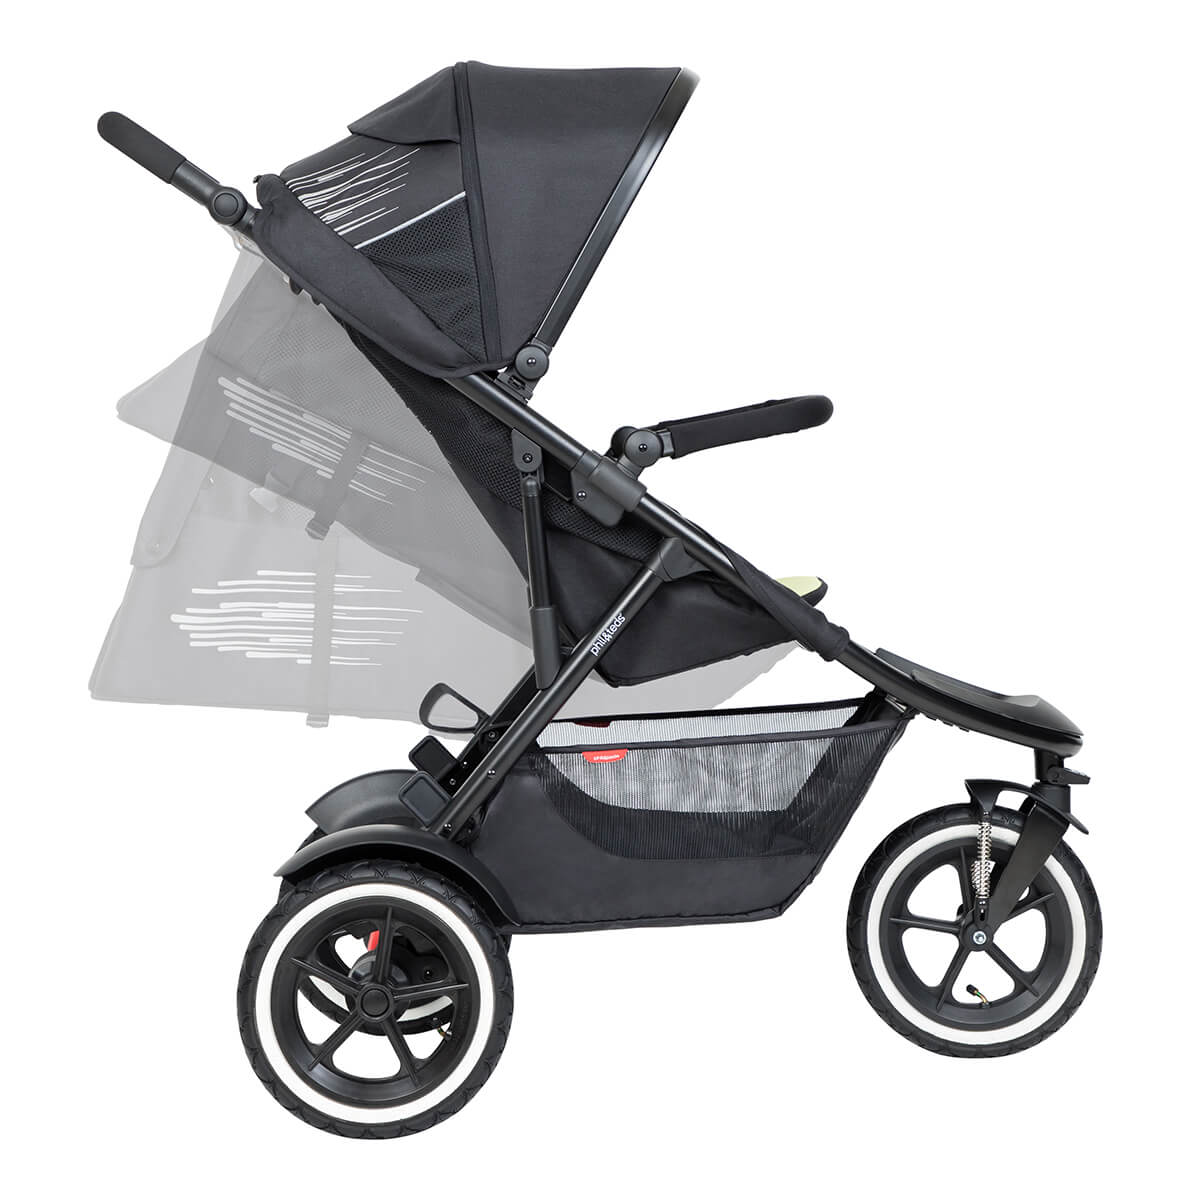 https://cdn.accentuate.io/4467127091253/19118870462517/philteds-sport-buggy-can-recline-in-multiple-angles-including-full-recline-for-newborn-baby-v1626403834899.jpg?1200x1200